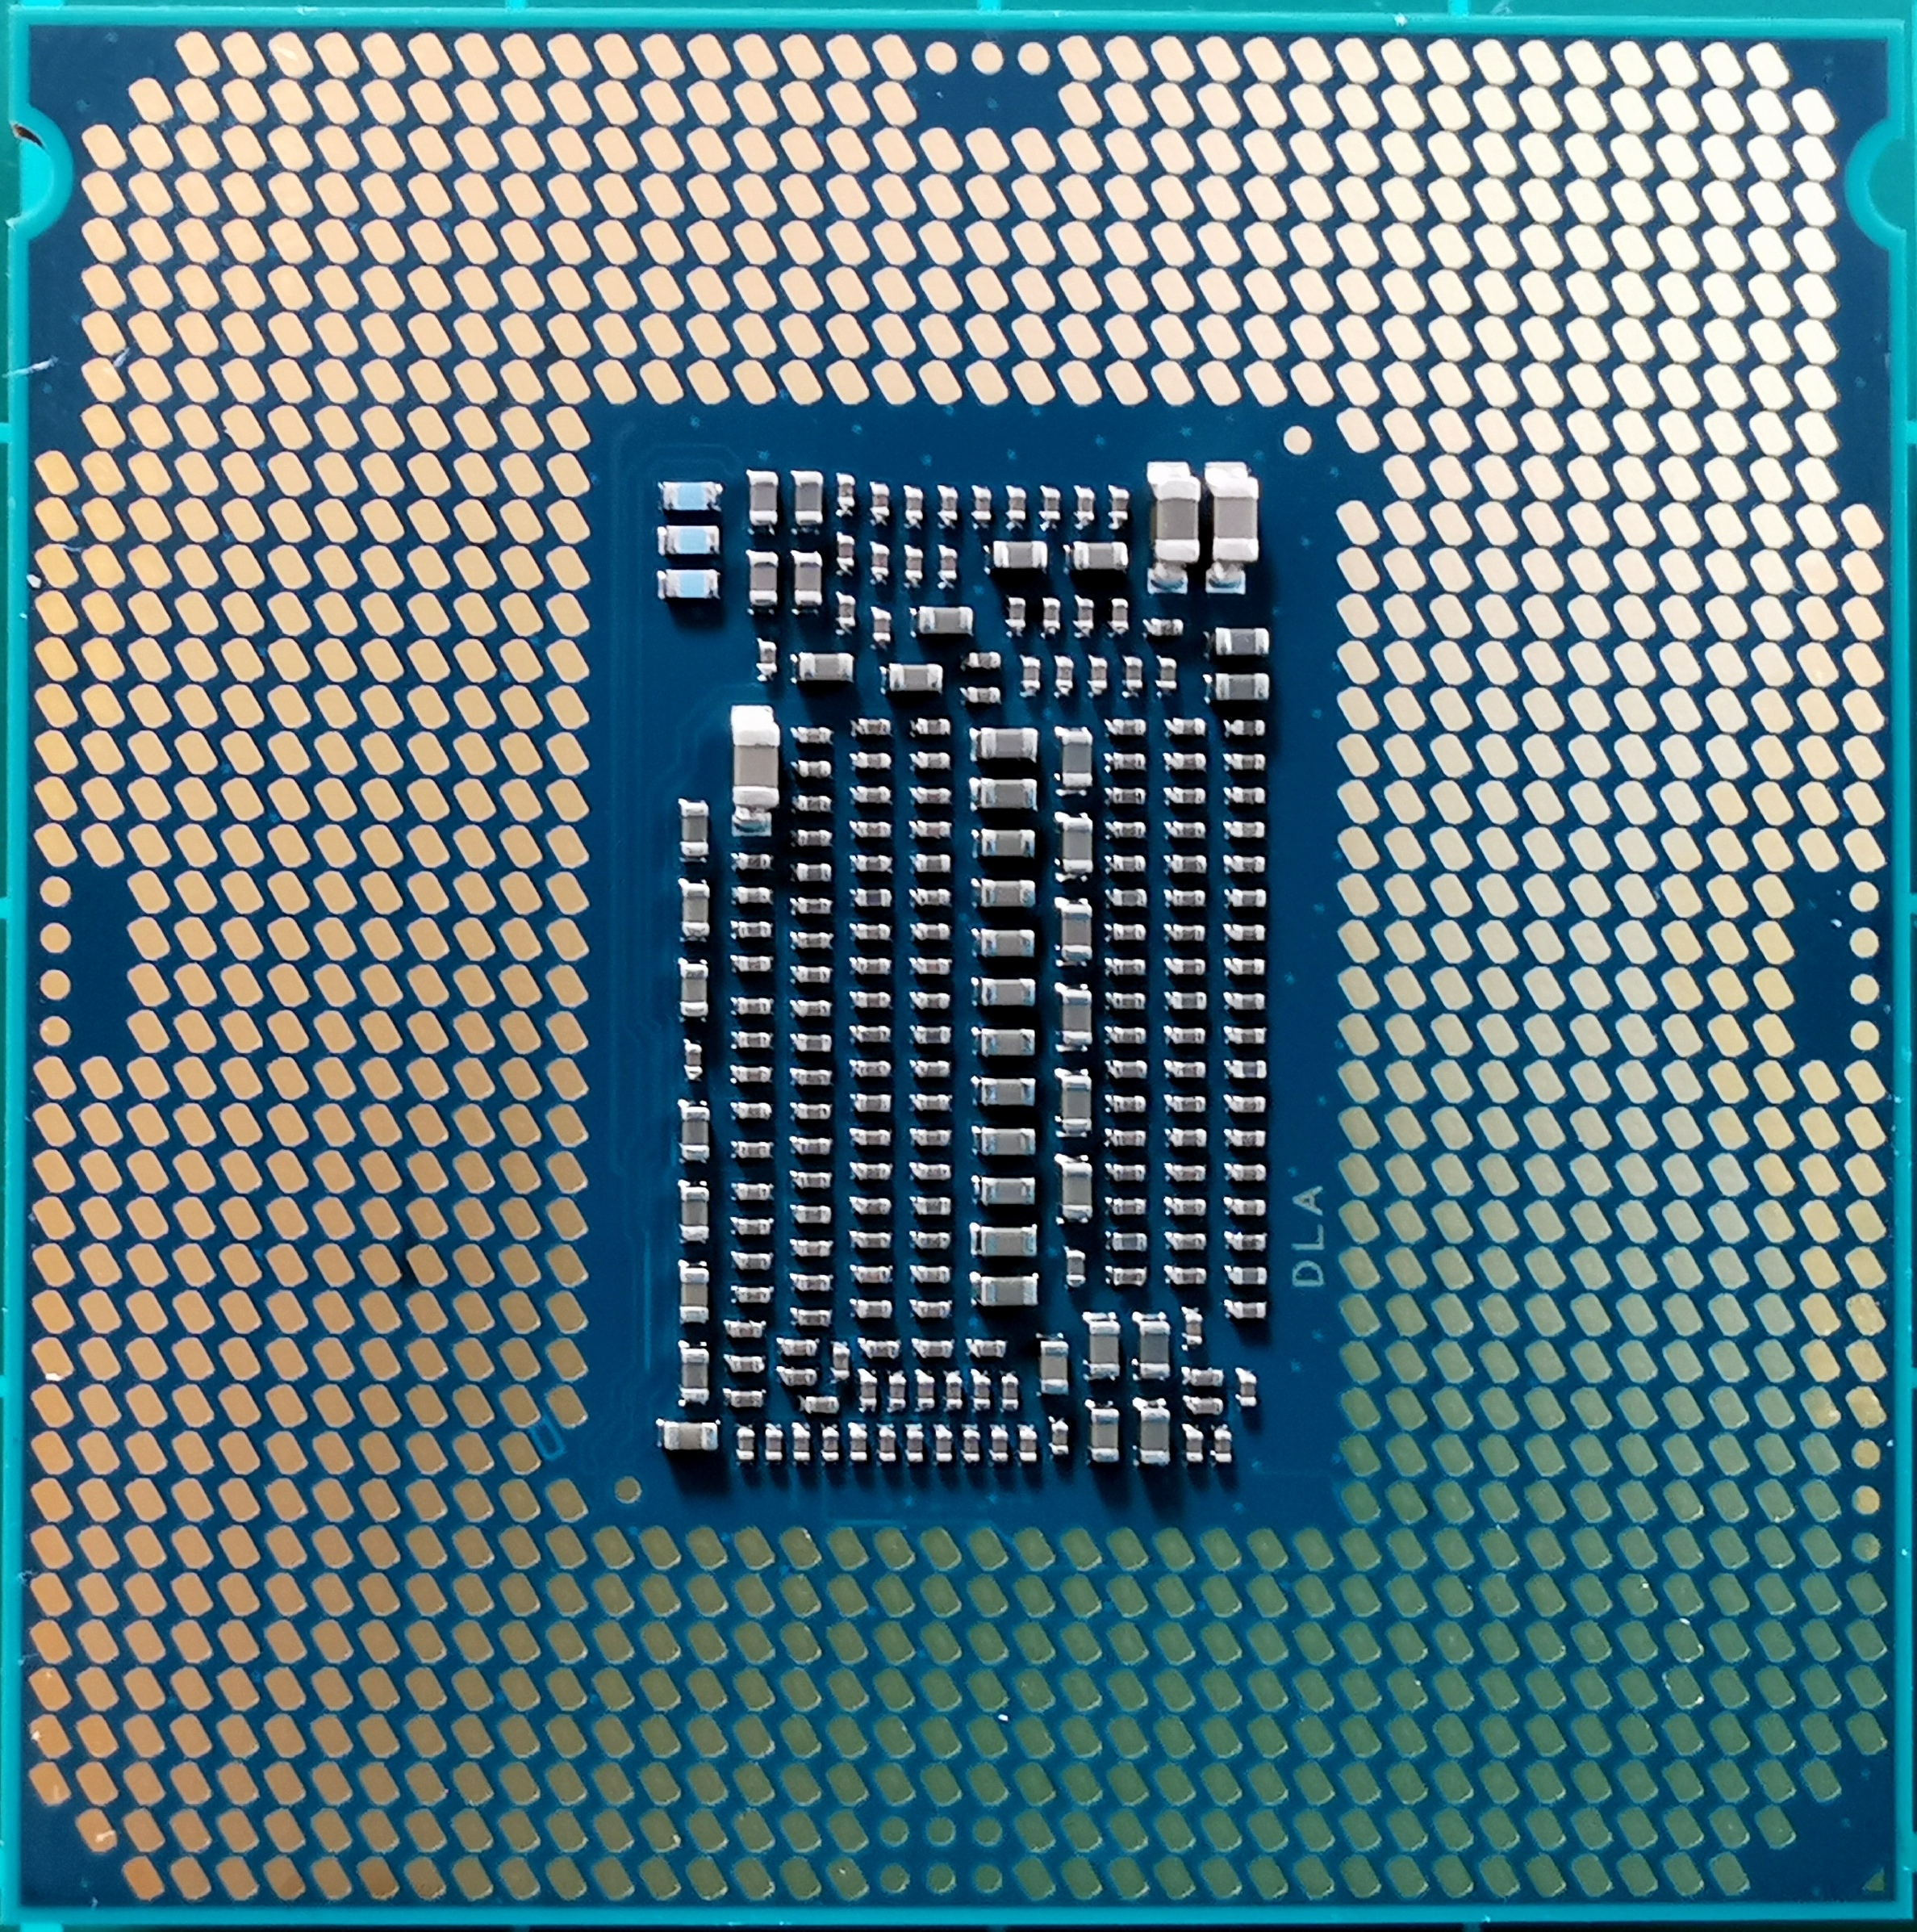 Conclusions - Upgrading from an Intel Core i7-2600K: Testing